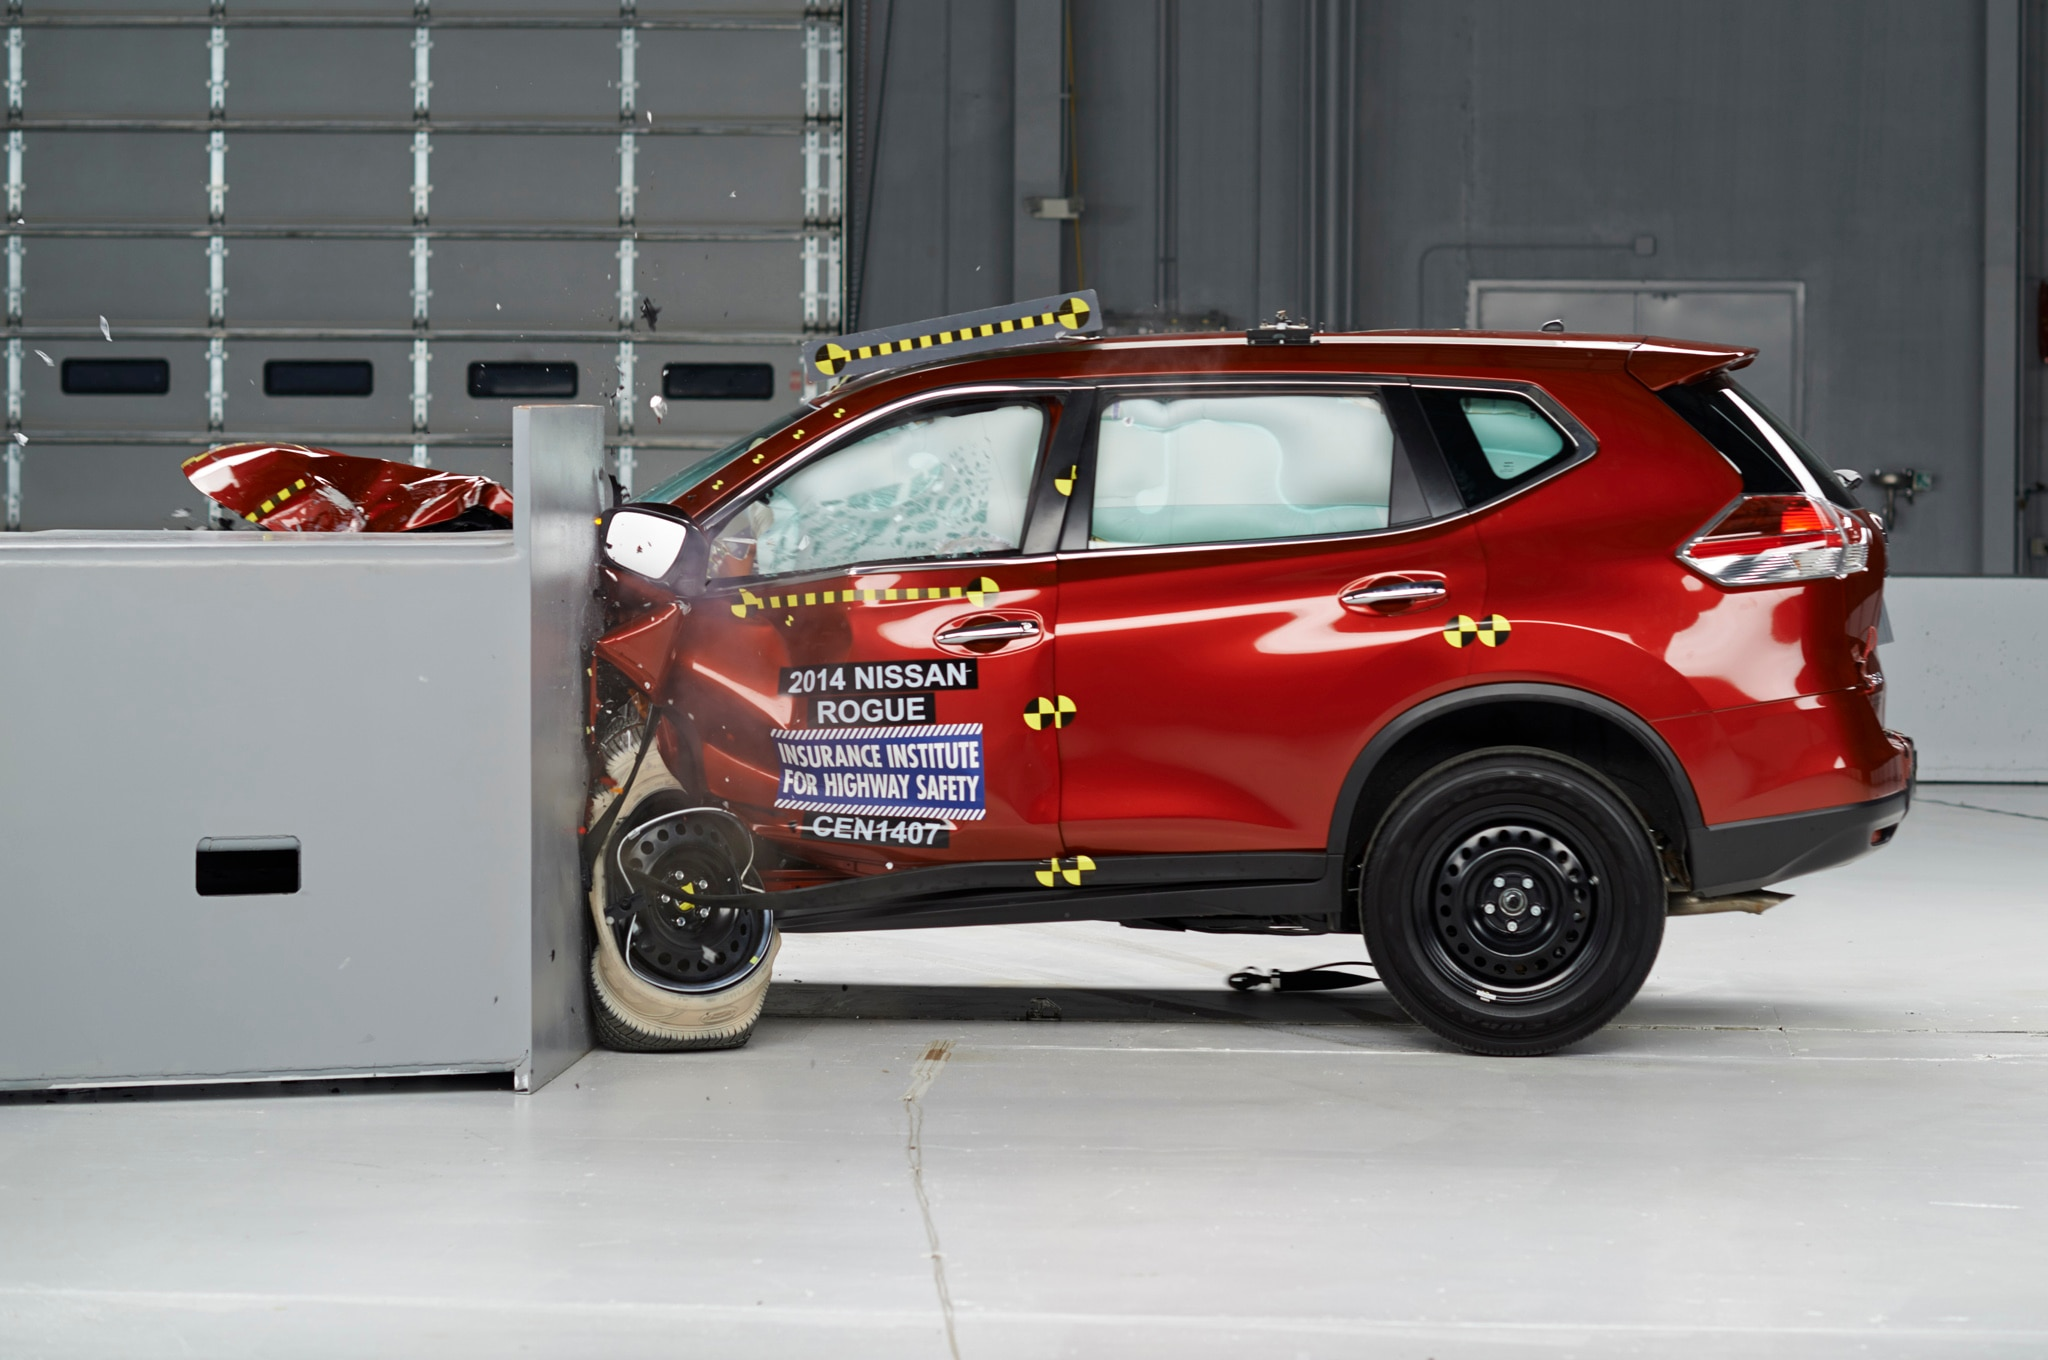 2014 Nissan Rogue Iihs Crash Profile1